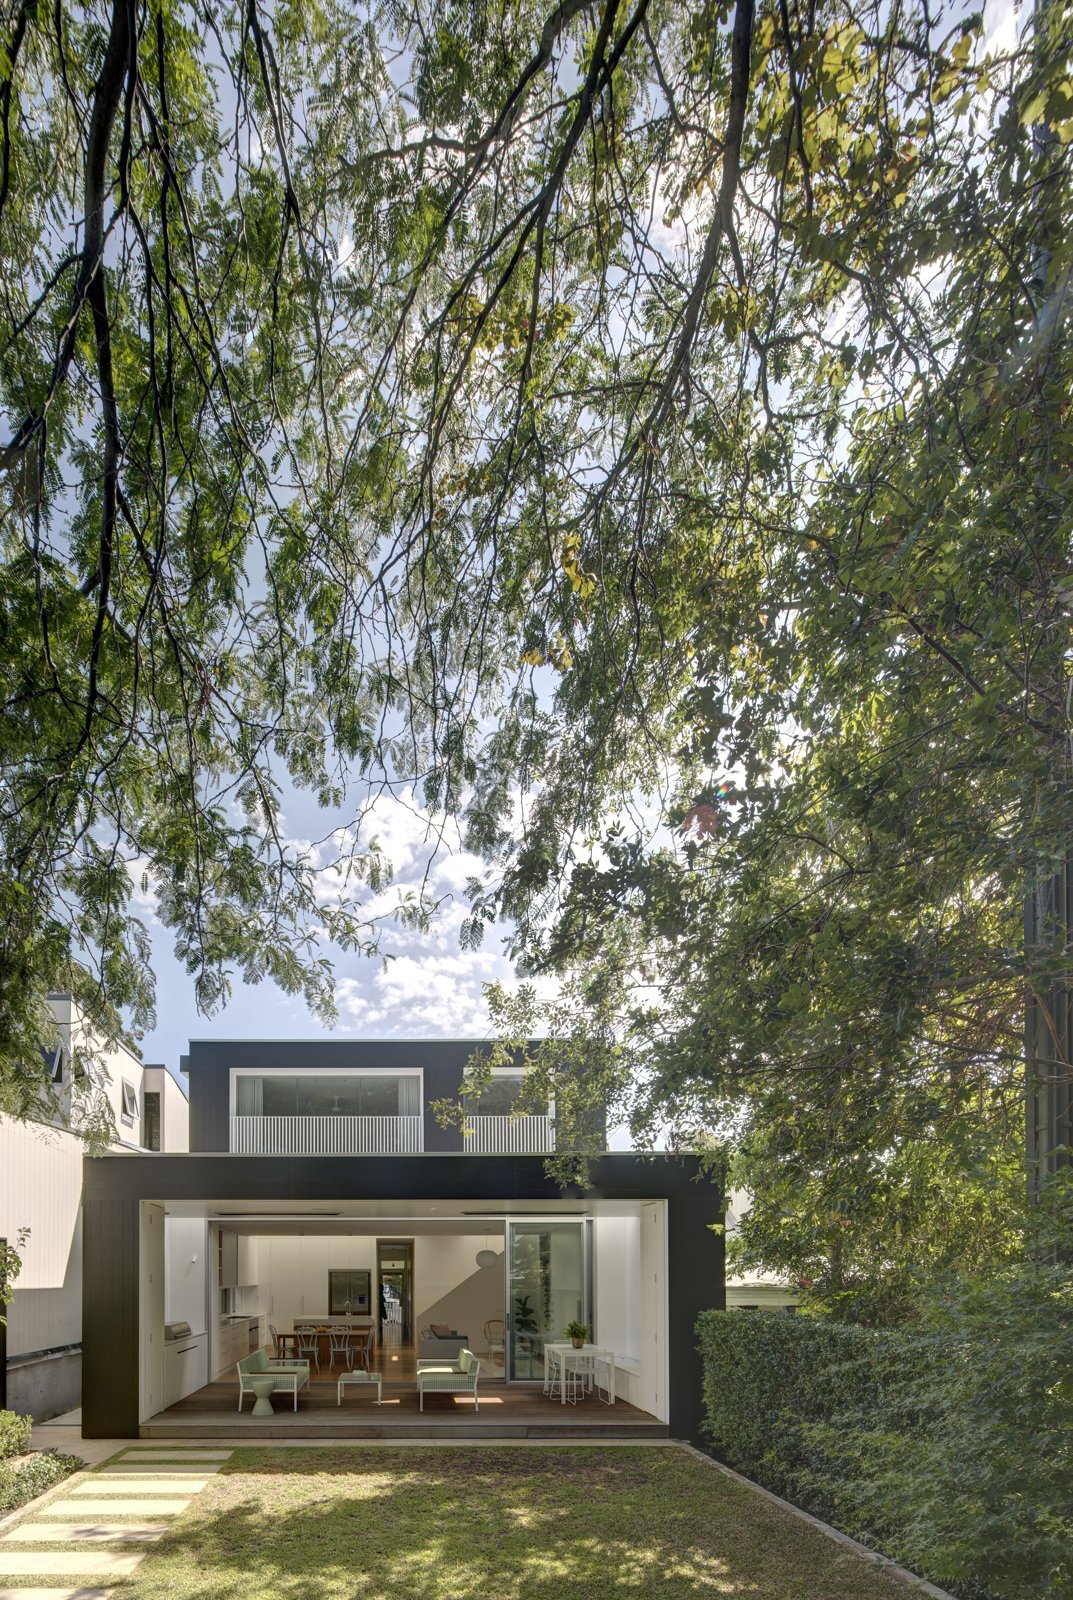 The rear of the house opens to the garden, creating a layering of spaces from inside to out.